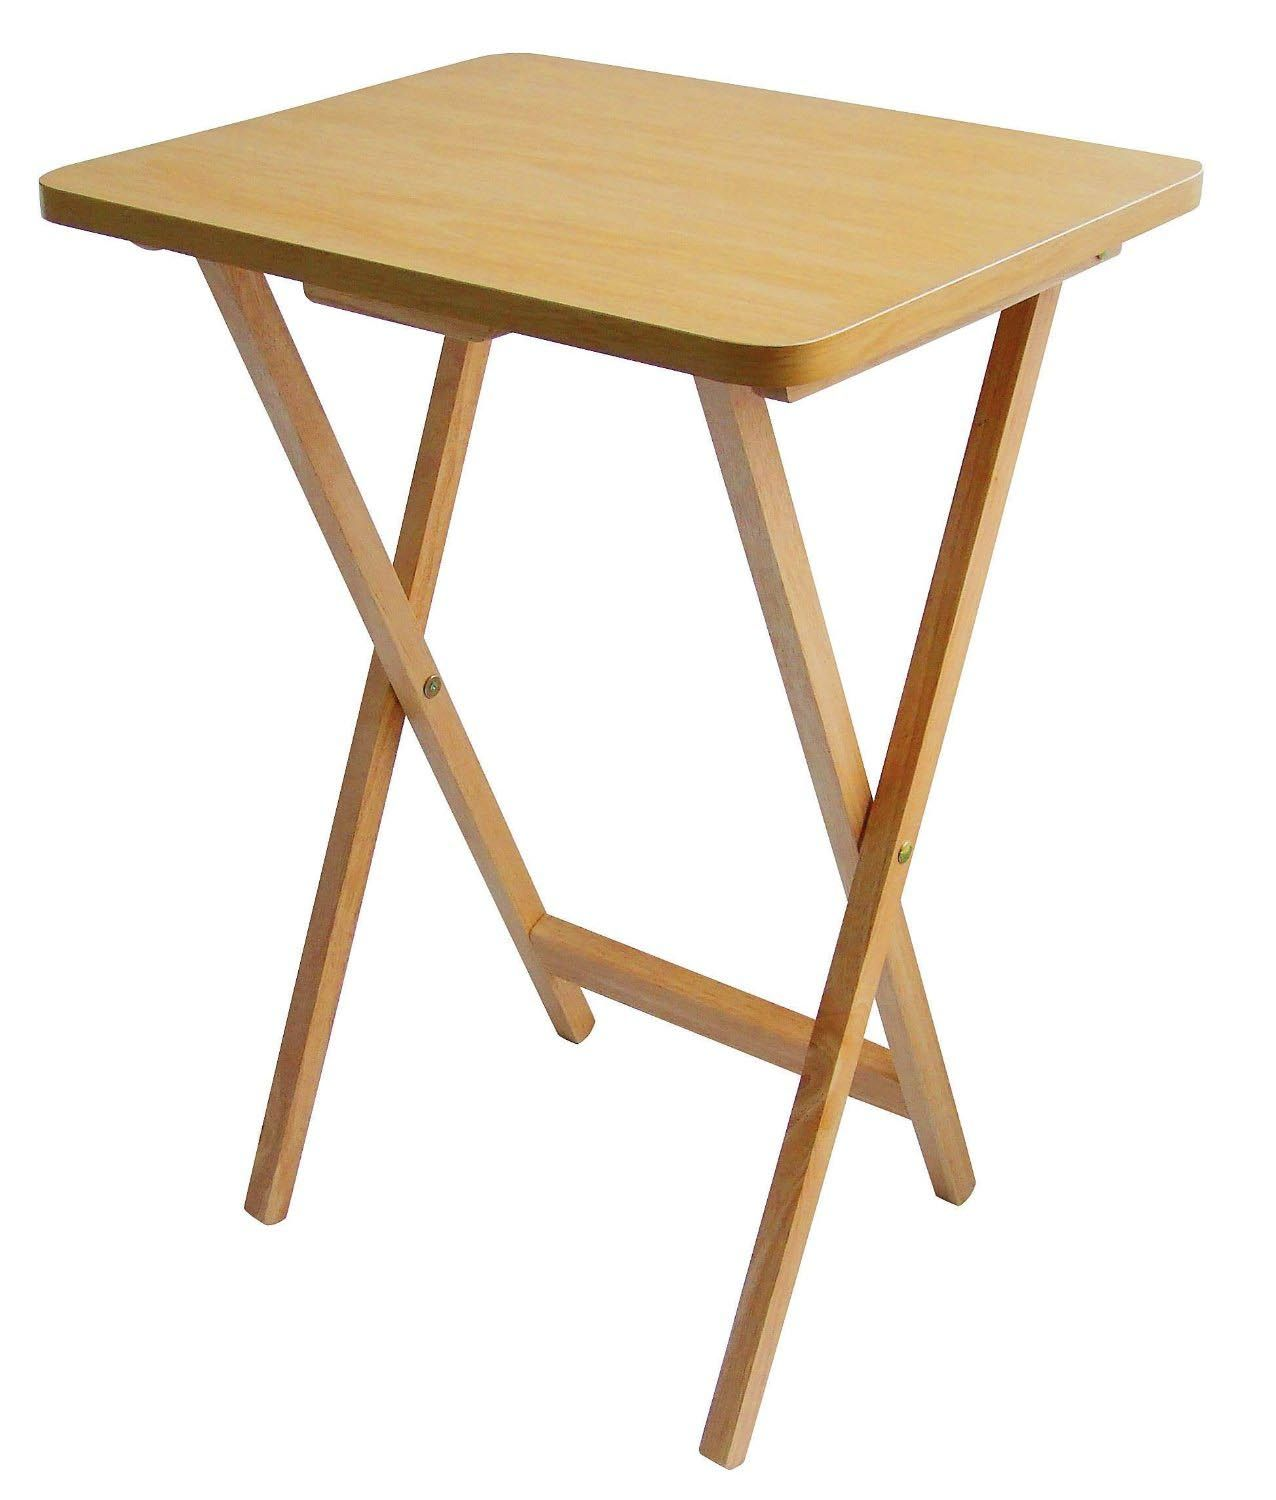 Captivating Small Folding Wooden Side Table   Teak Wood Tables Complement Houses Of  Several Sizes And Function In A Variety Of Ways. The The Highest Quality Of  Teak Ta